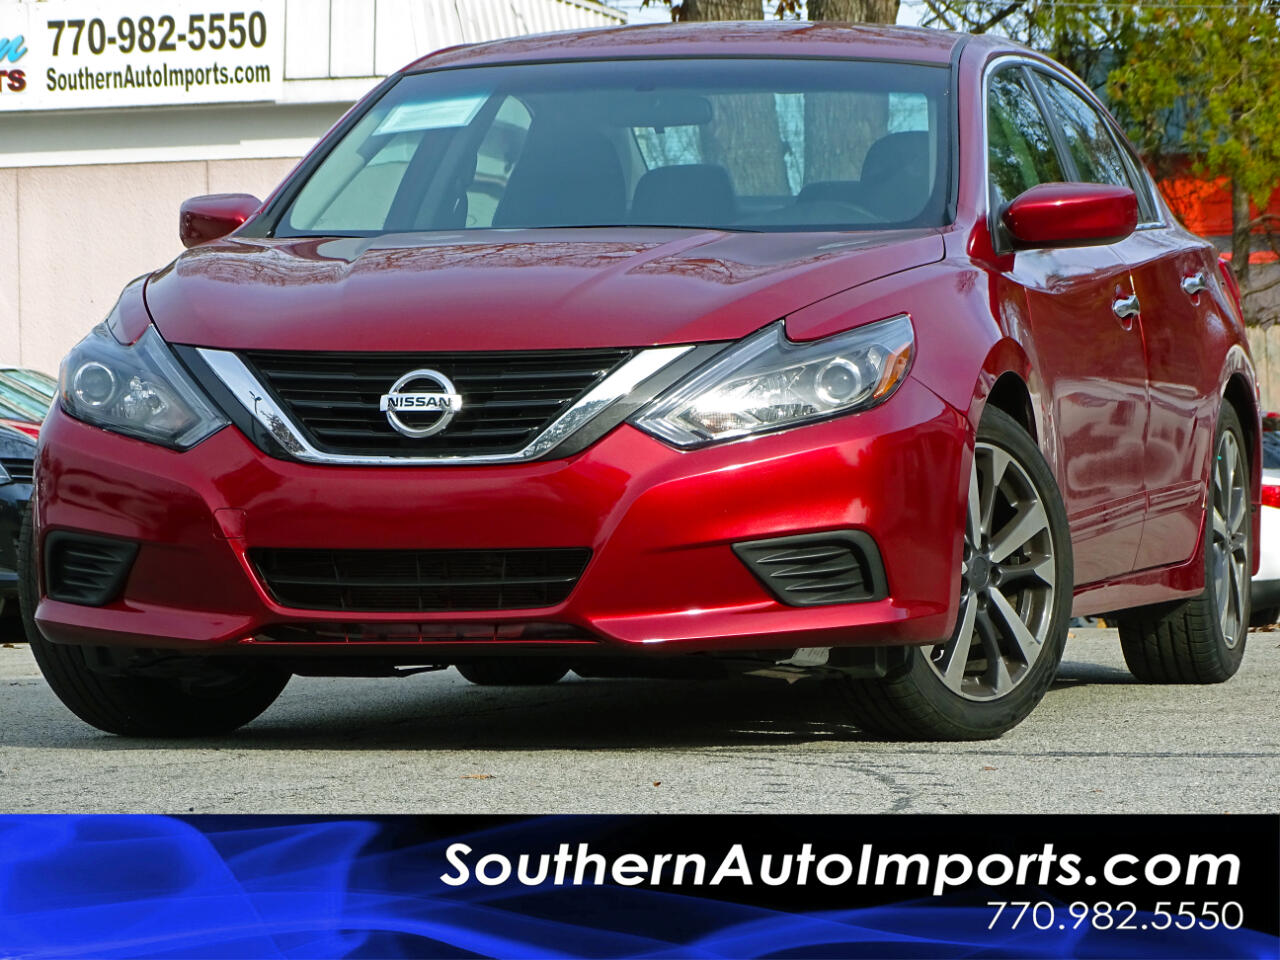 2017 Nissan Altima 2.5 SR w/Paddle Shifters Alloy wheels